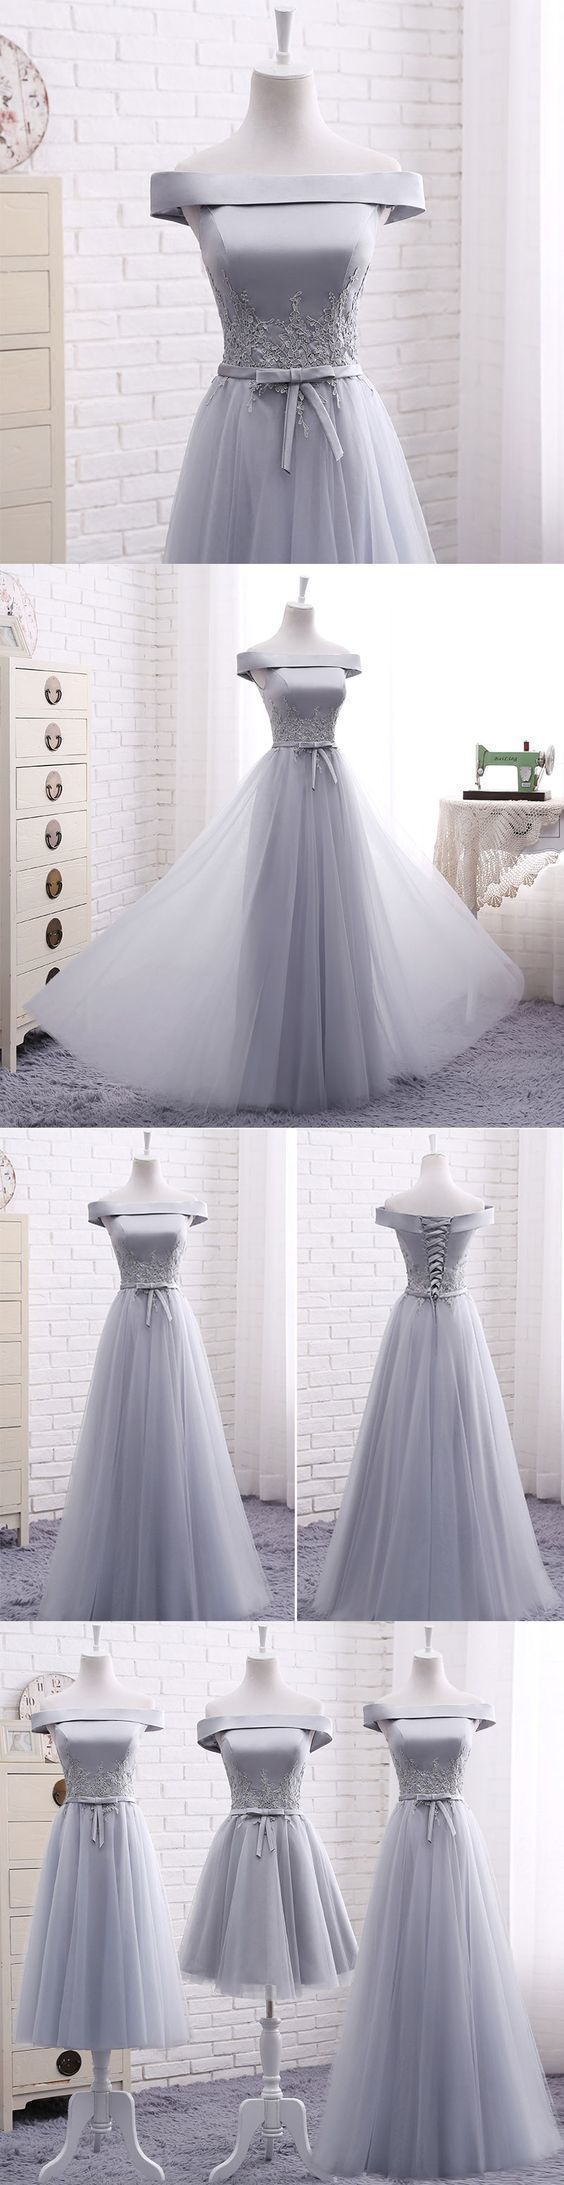 Elegant A line gray off shoulder long prom dress, short evening dresses,Formal #eveningdresses